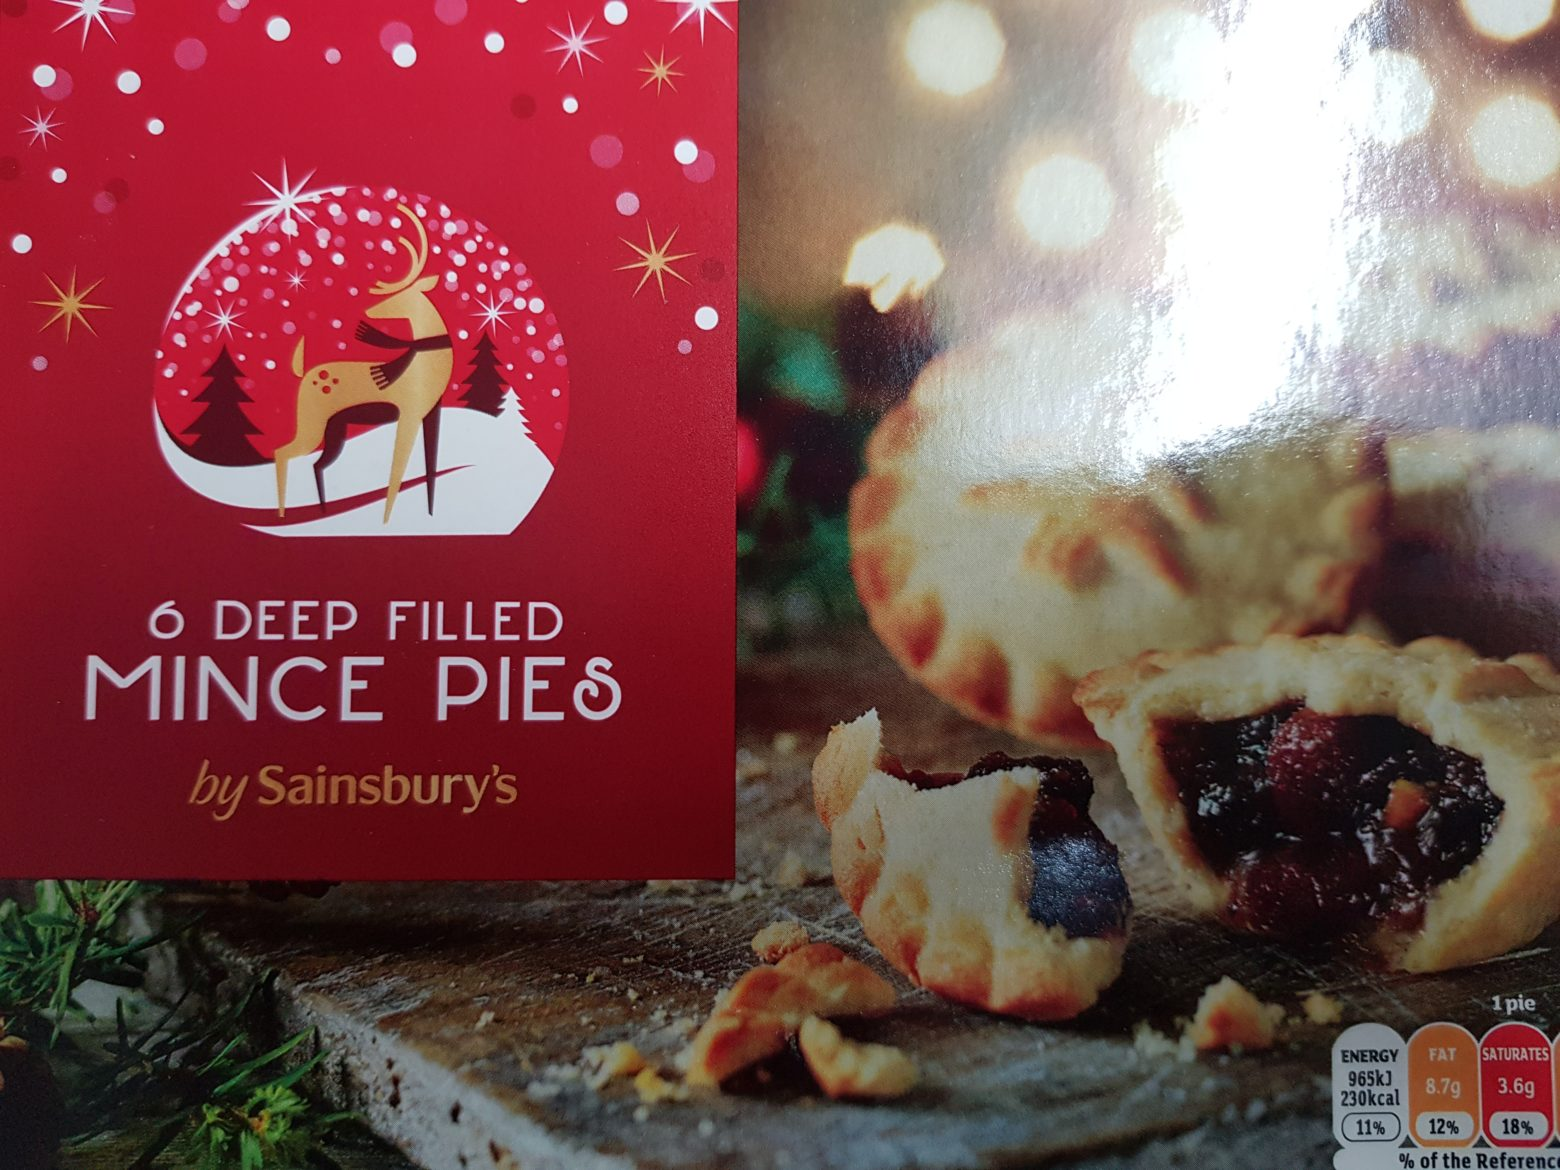 Sainsbury's Deep Filled Mince Pie Review 2019